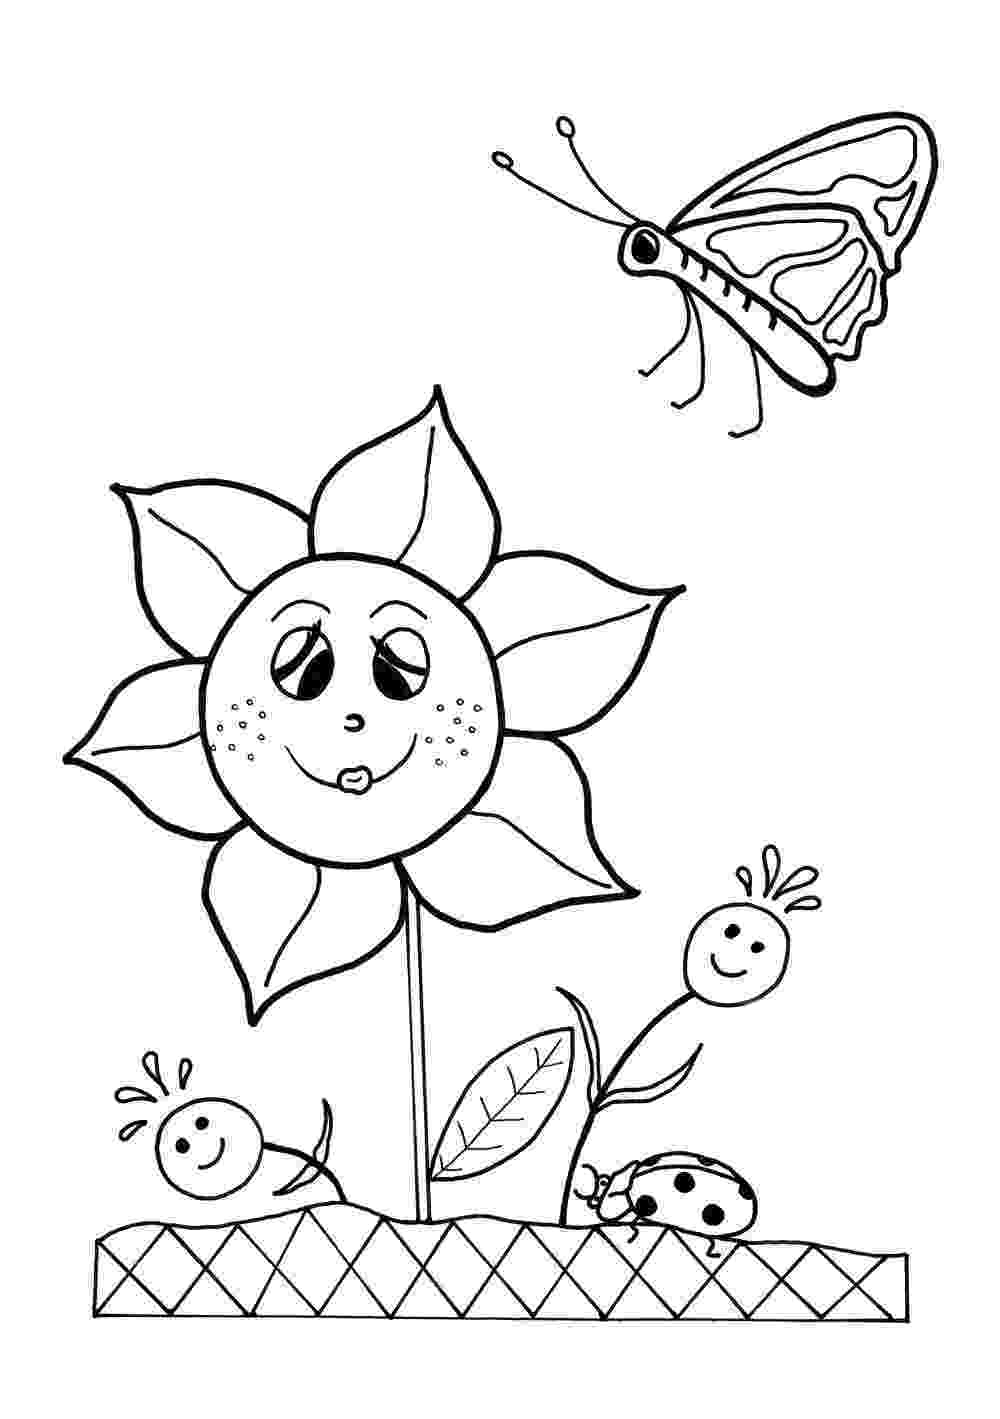 free printable spring flower coloring pages spring coloring pages 2018 dr odd spring printable free pages flower coloring